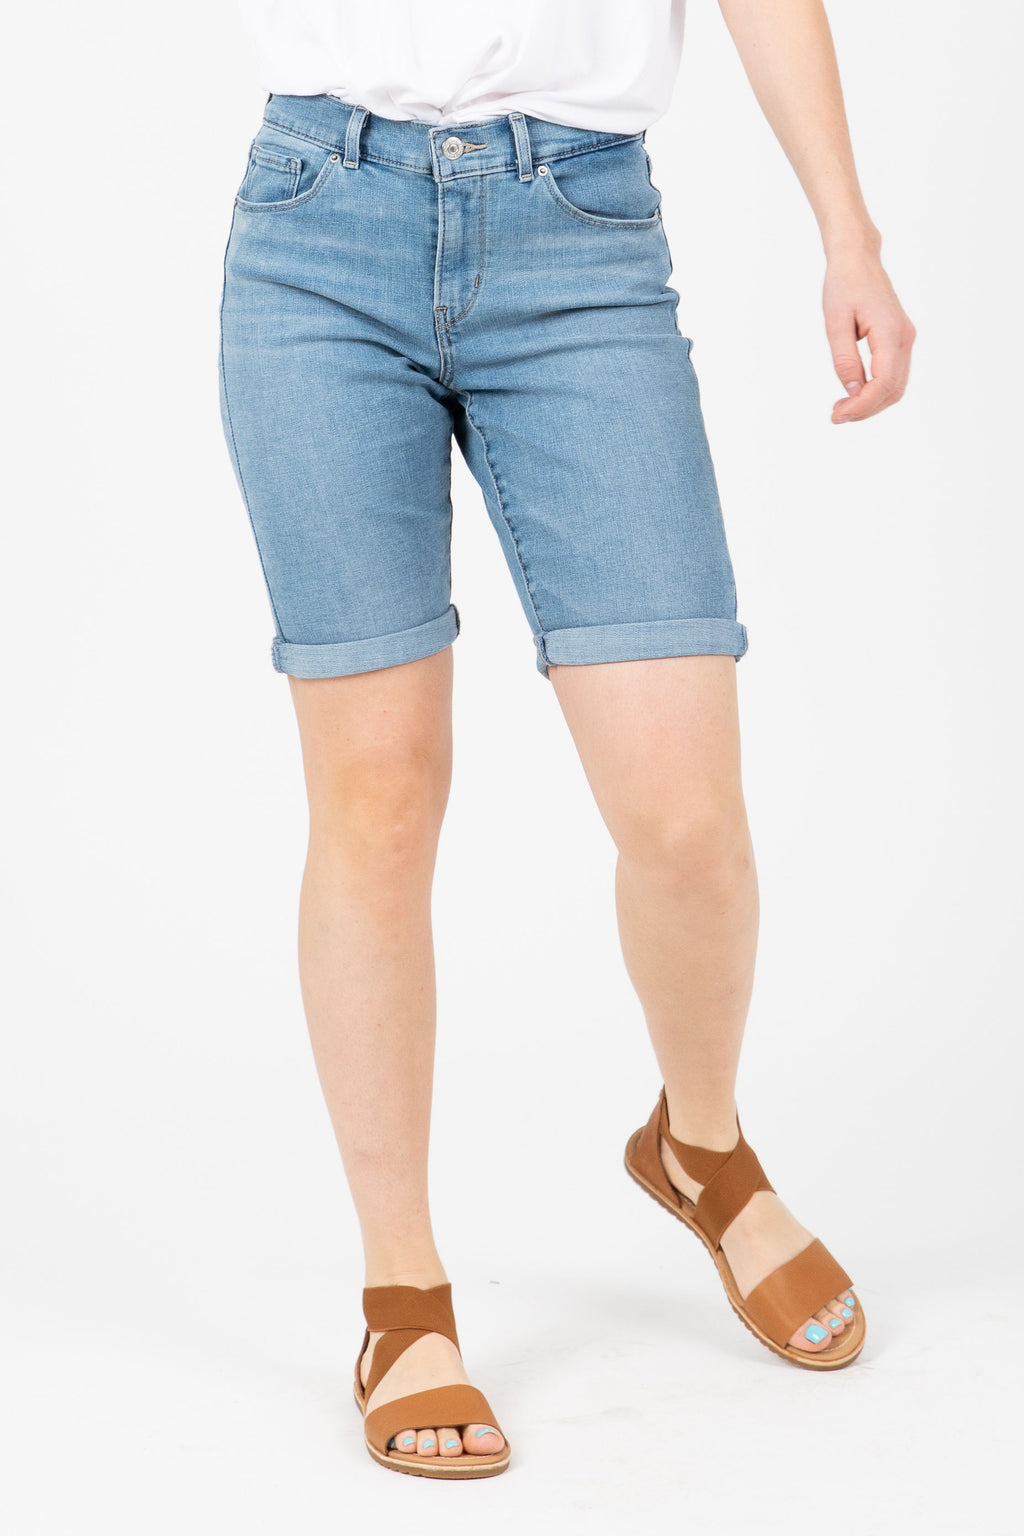 Levi's: Bermuda Shorts in Forever Light